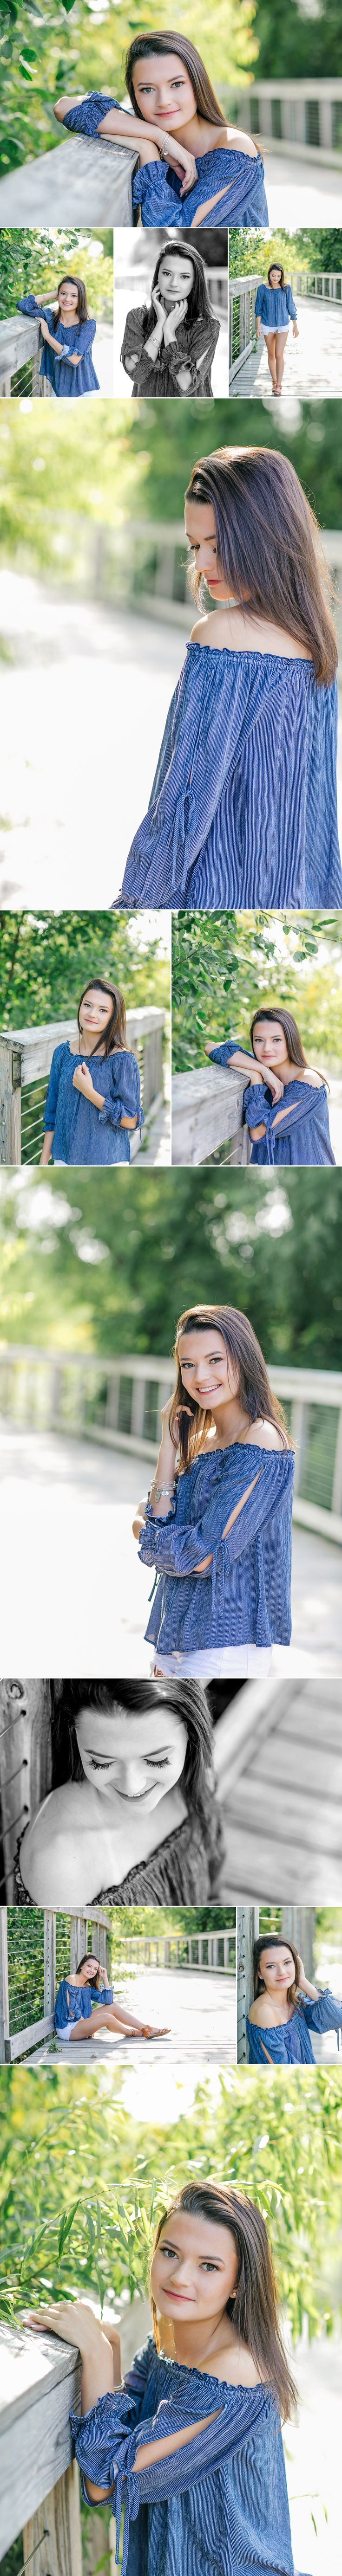 Madison | Eagan High School Senior Pictures